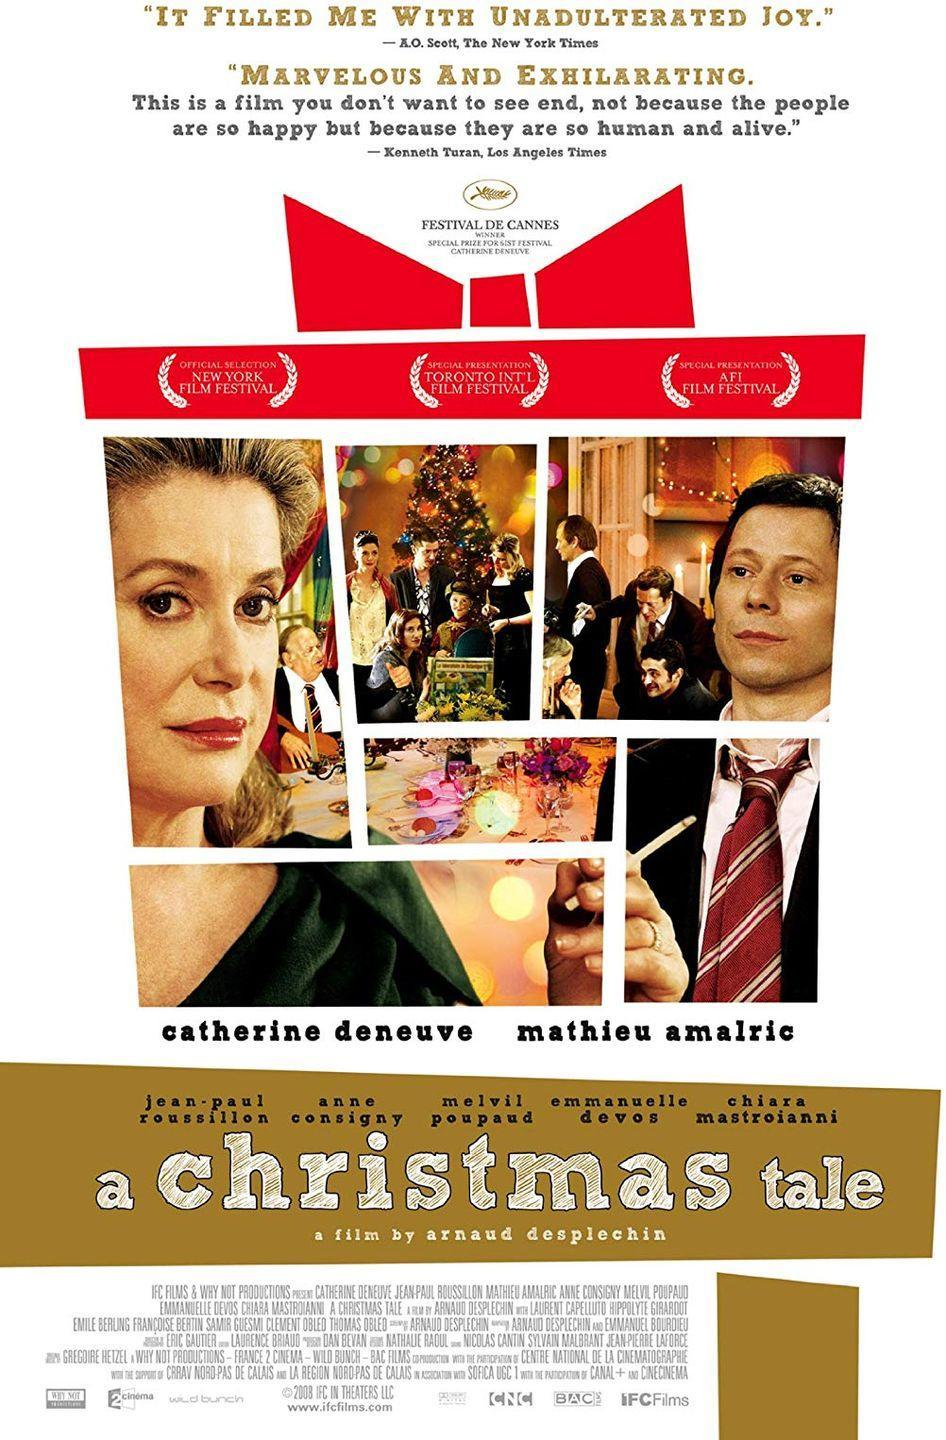 """<p>Even if you haven't heard of this 2008 French film before, this family drama set during Christmas and starring Catherine Deneuve is worth adding to your must-watch list.</p><p><a class=""""link rapid-noclick-resp"""" href=""""https://www.amazon.com/Christmas-Tale-English-Subtitled/dp/B003A8YX3O/?tag=syn-yahoo-20&ascsubtag=%5Bartid%7C10055.g.1315%5Bsrc%7Cyahoo-us"""" rel=""""nofollow noopener"""" target=""""_blank"""" data-ylk=""""slk:WATCH NOW"""">WATCH NOW</a> </p>"""